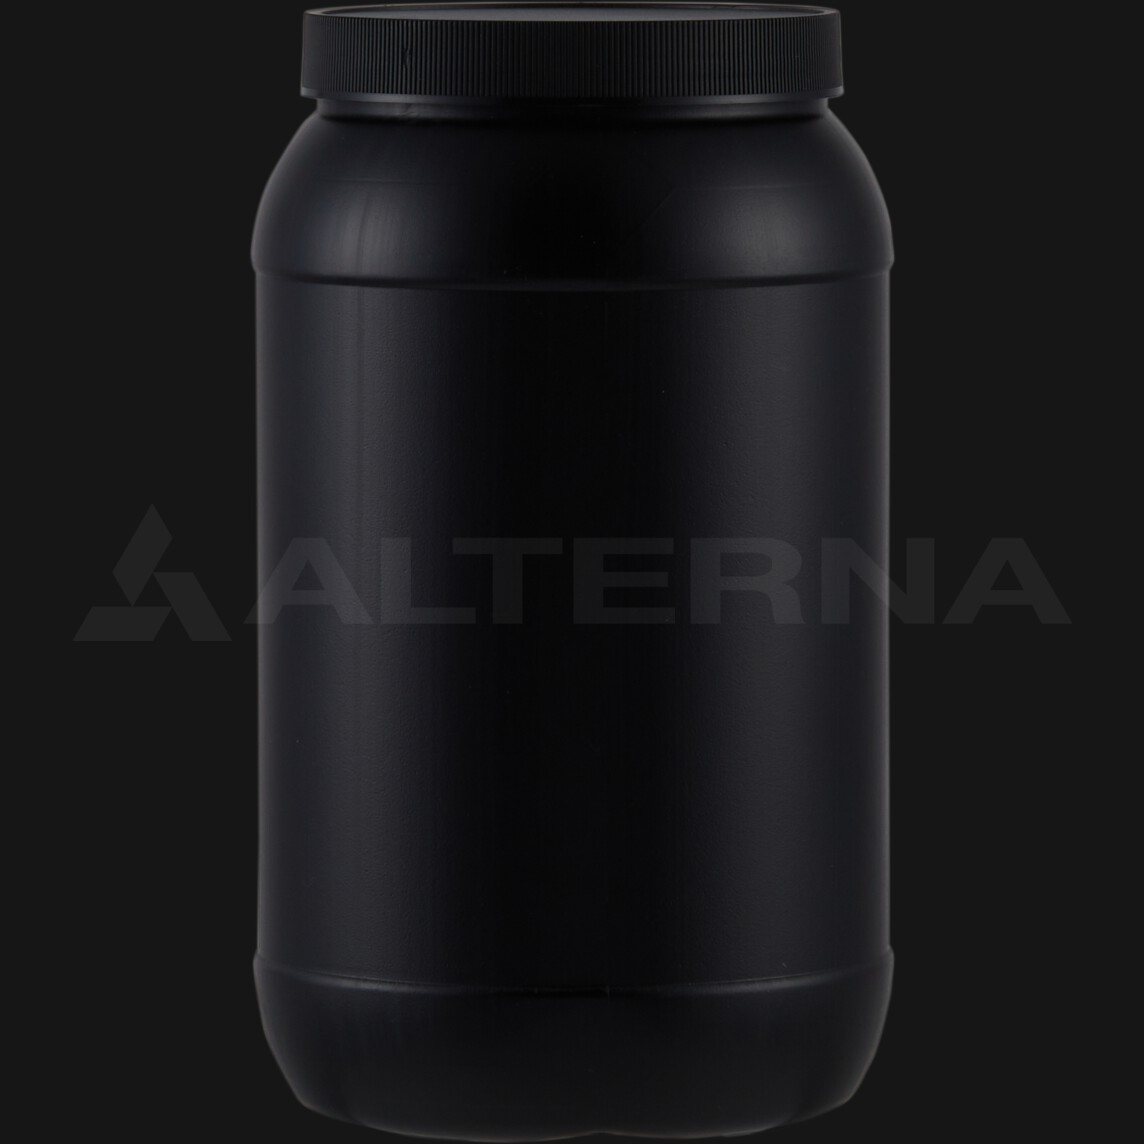 3000 ml HDPE Jar for Protein Powder